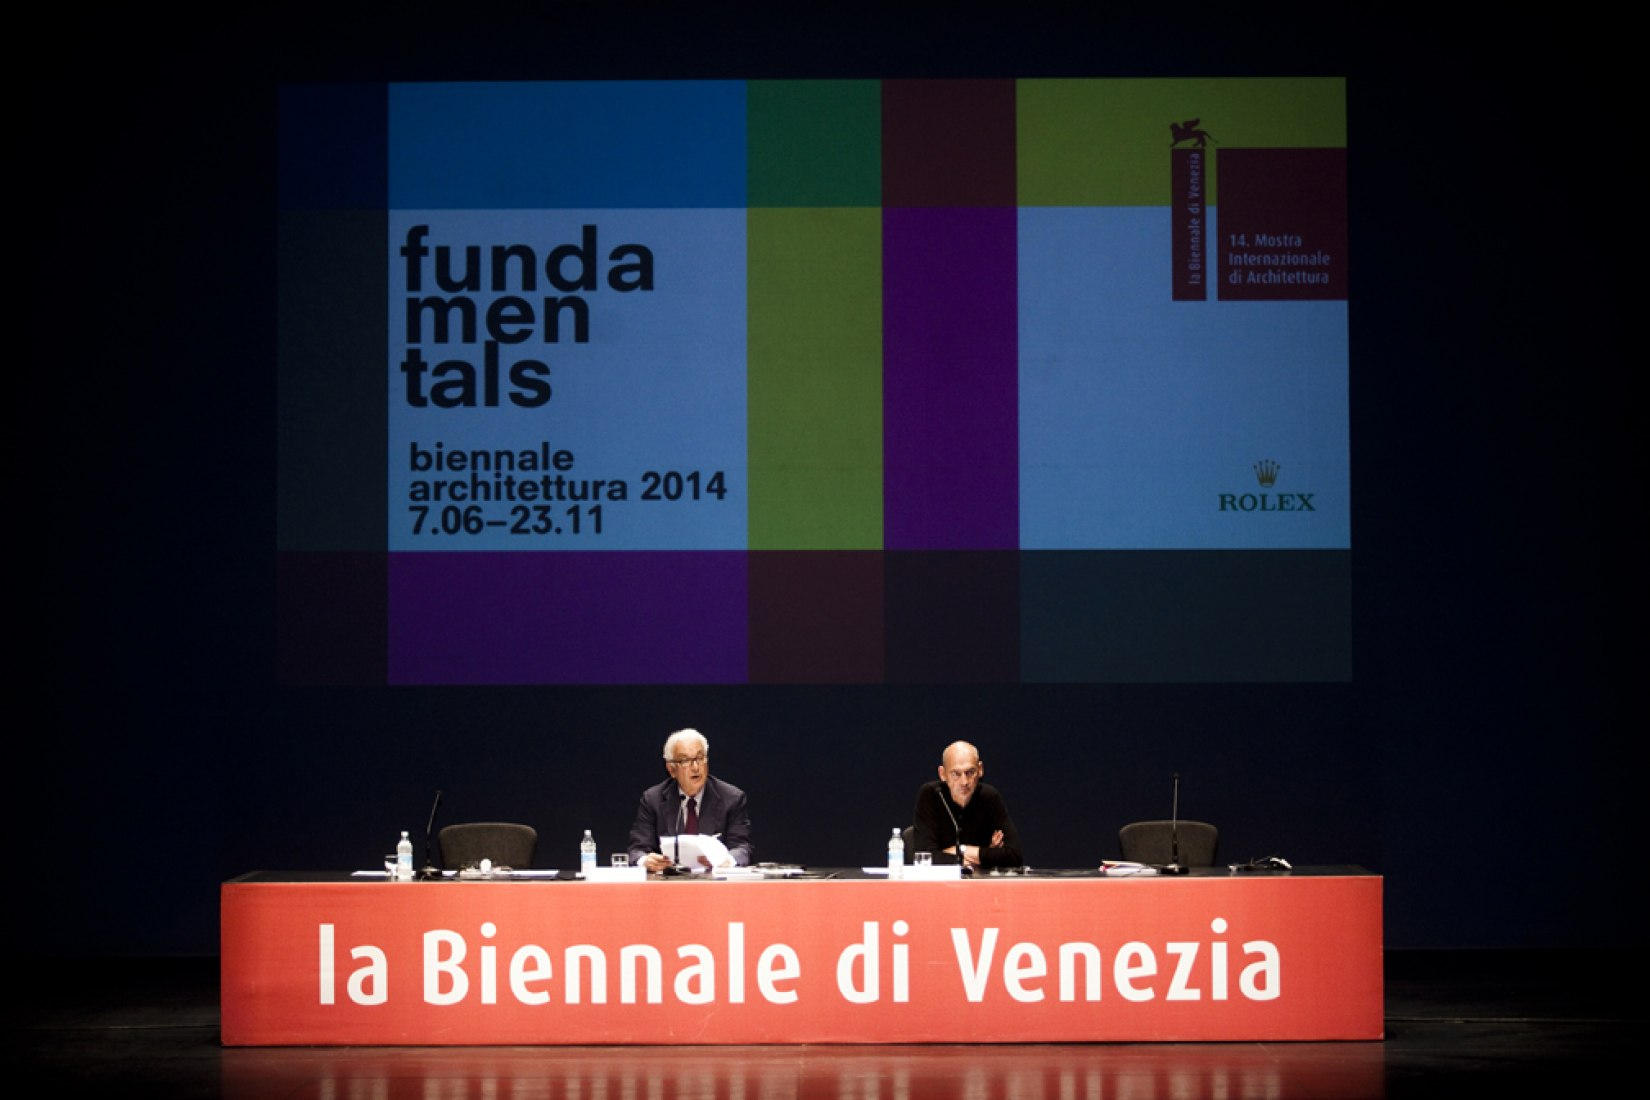 Paolo Baratta and Rem Koolhaas. Photograph © Italo Rondinella. Courtesy of the Venice Biennale.